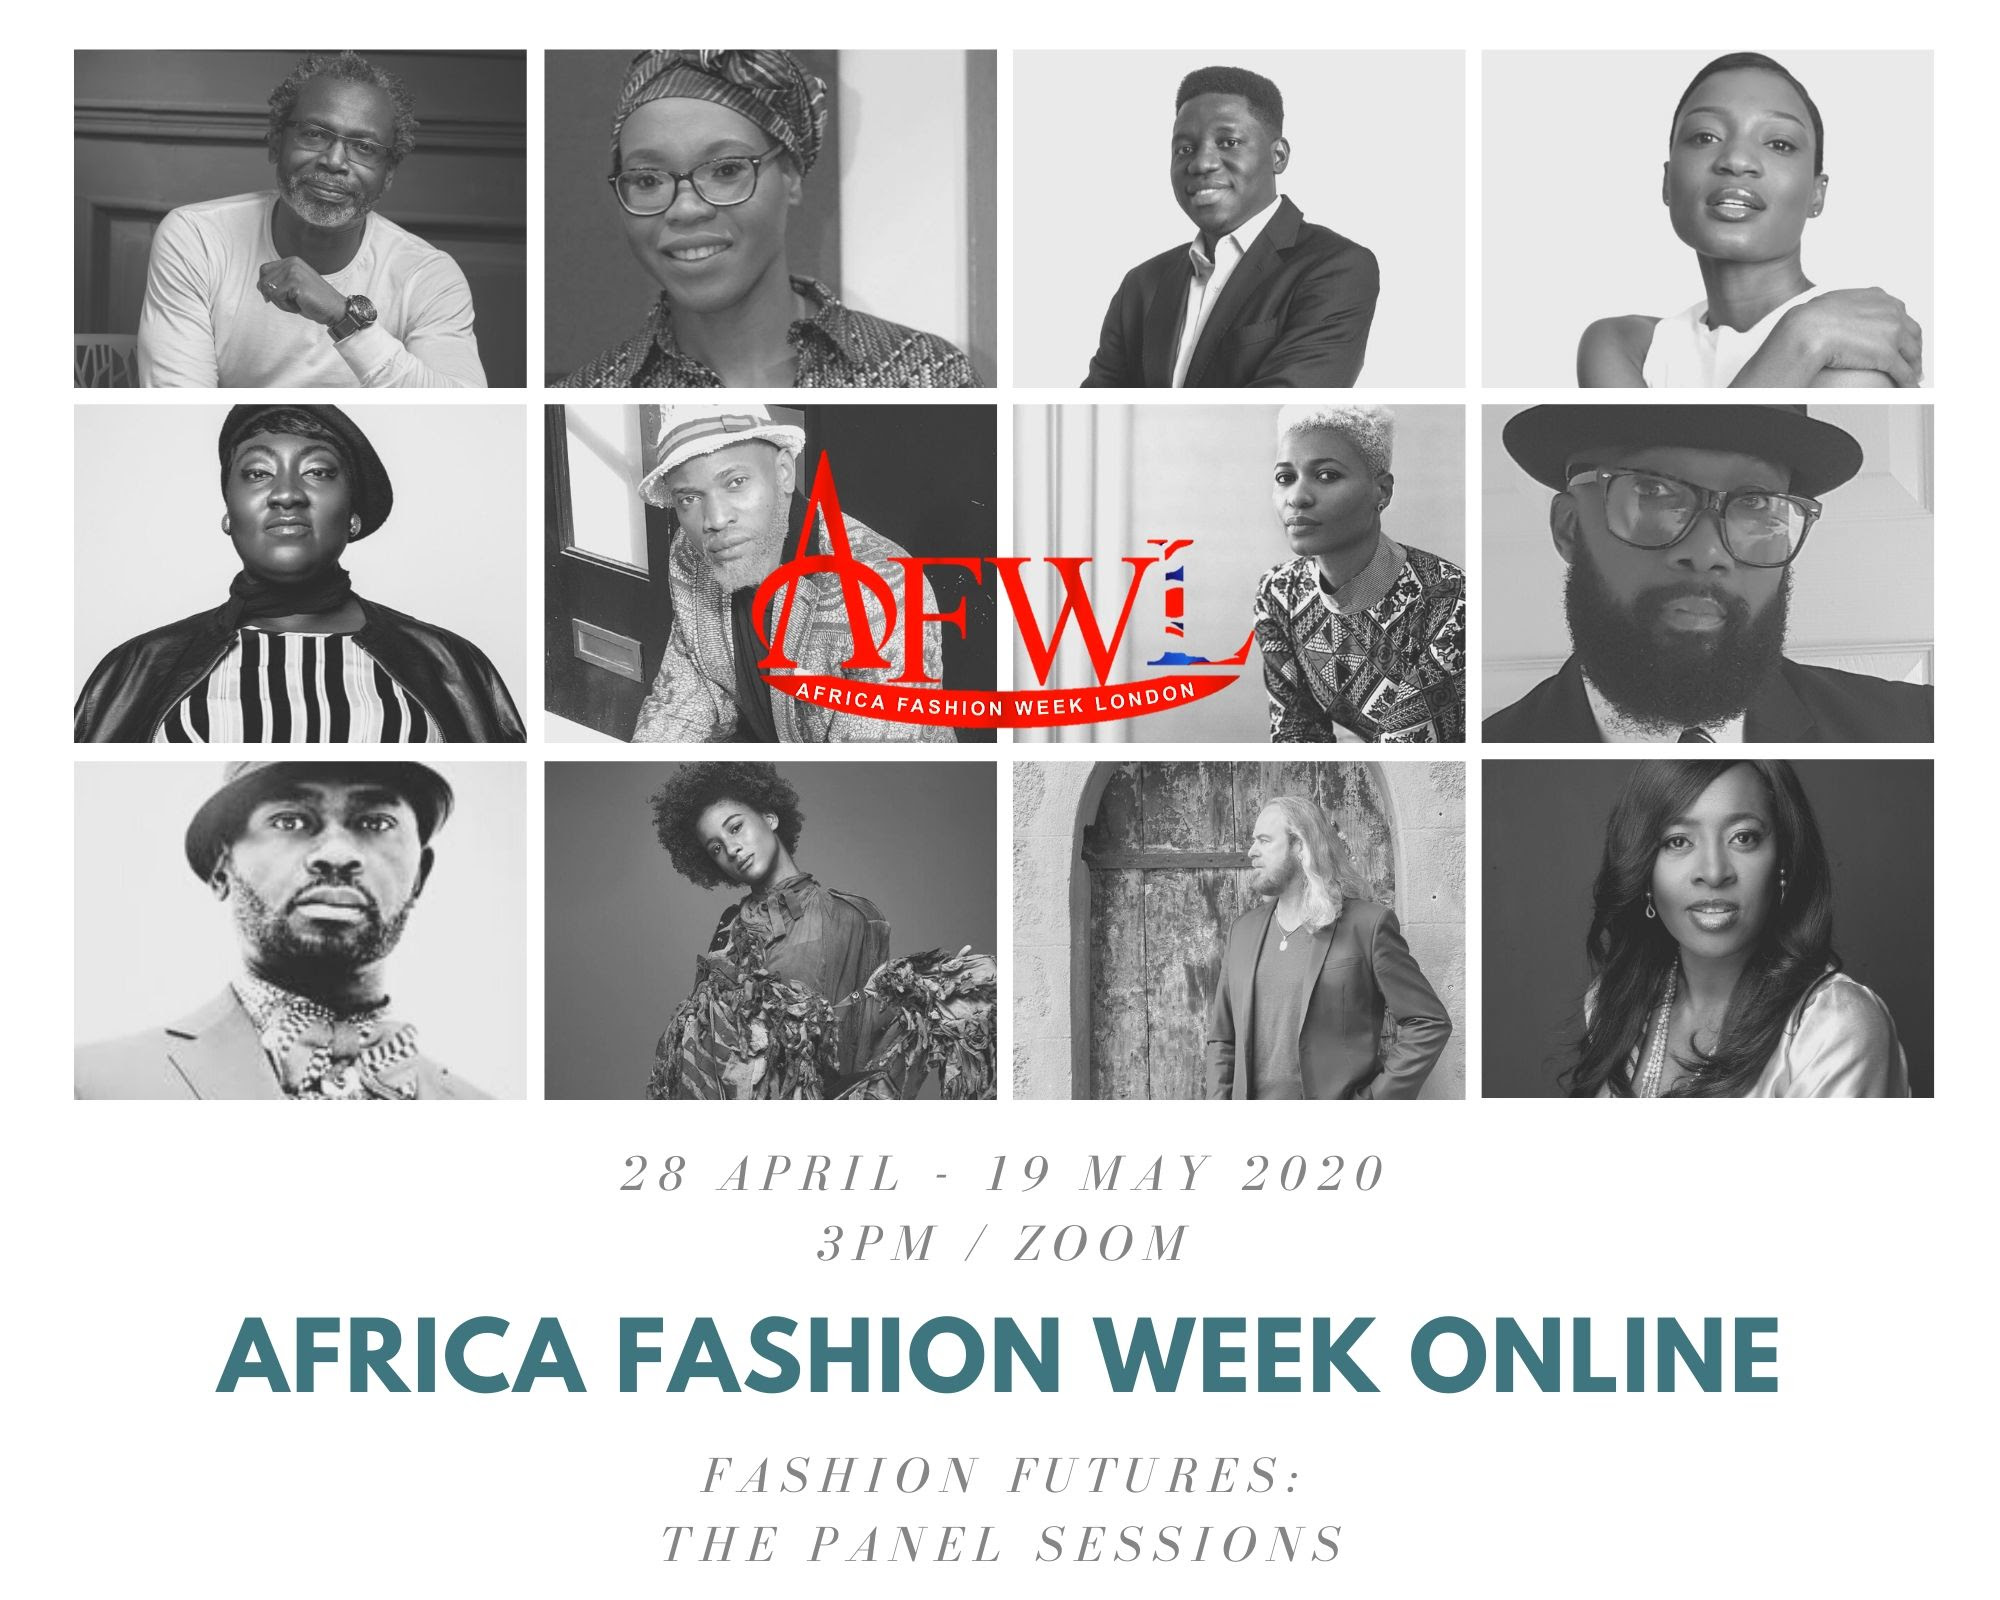 AFRICA FASHION WEEK LONDON GOES ONLINE